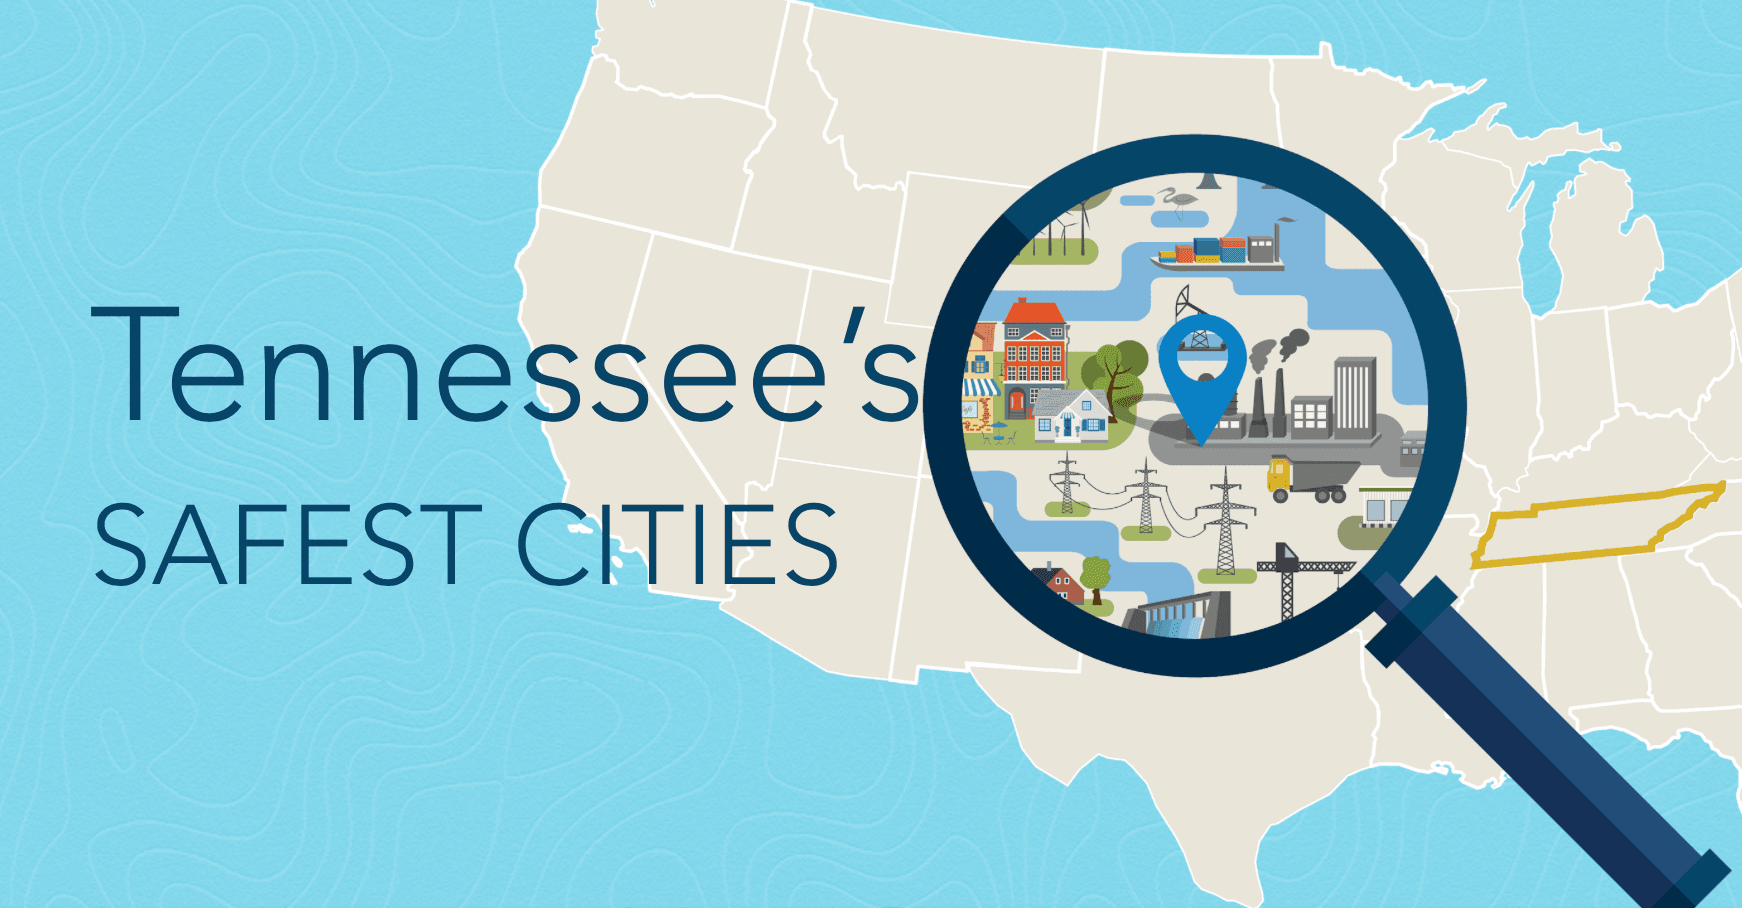 Spring Hill ranked second safest city in Tennessee